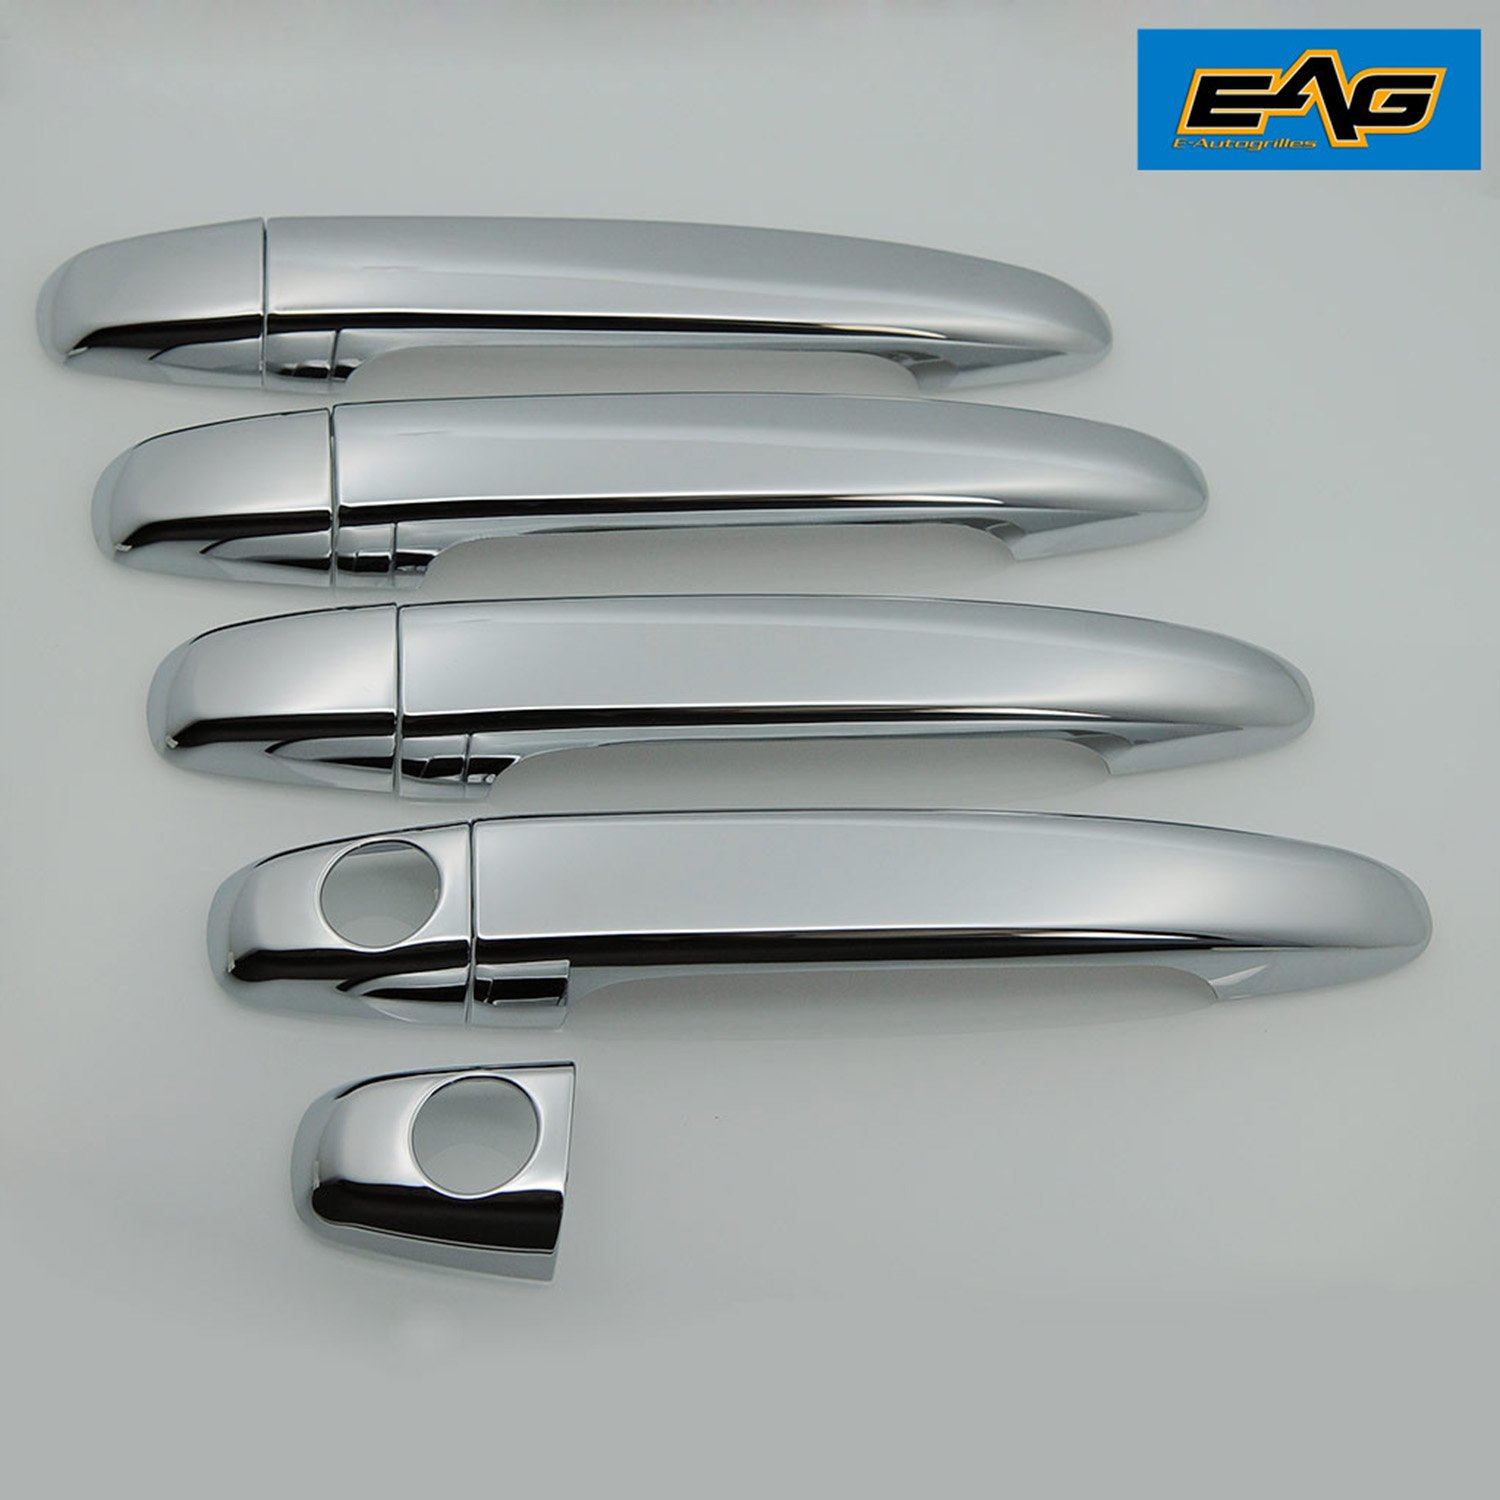 E-Autogrilles Triple Chrome Plated ABS 4 Door Handle Cover without Smart Key Hole for 05-15 Toyota Tacoma / 03-09 Toyota 4Runner / 07-11 Toyota Camry / 08-13 Toyota Highlander / 03-09 Lexus GX 470 / 04-09 Lexus RX 330/RX350/E4004 / 05-12 Toyota Avalon / 04-10 Toyota Sienna (64-0508)